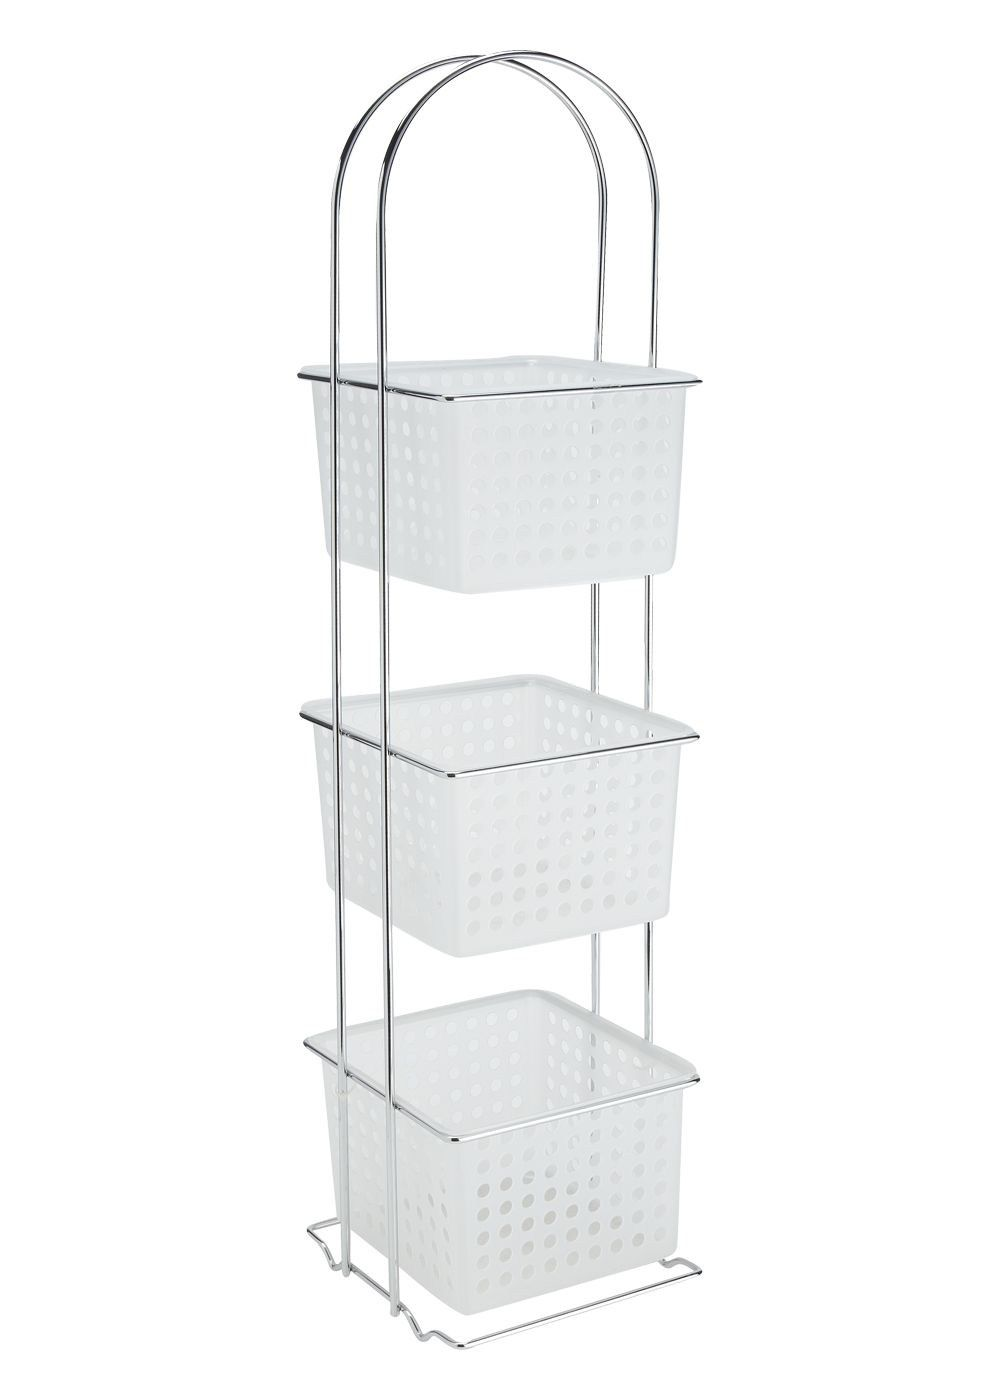 3 Tier Bathroom Caddy (20cm x 19cm x 84cm) - Matalan | Make-up ...